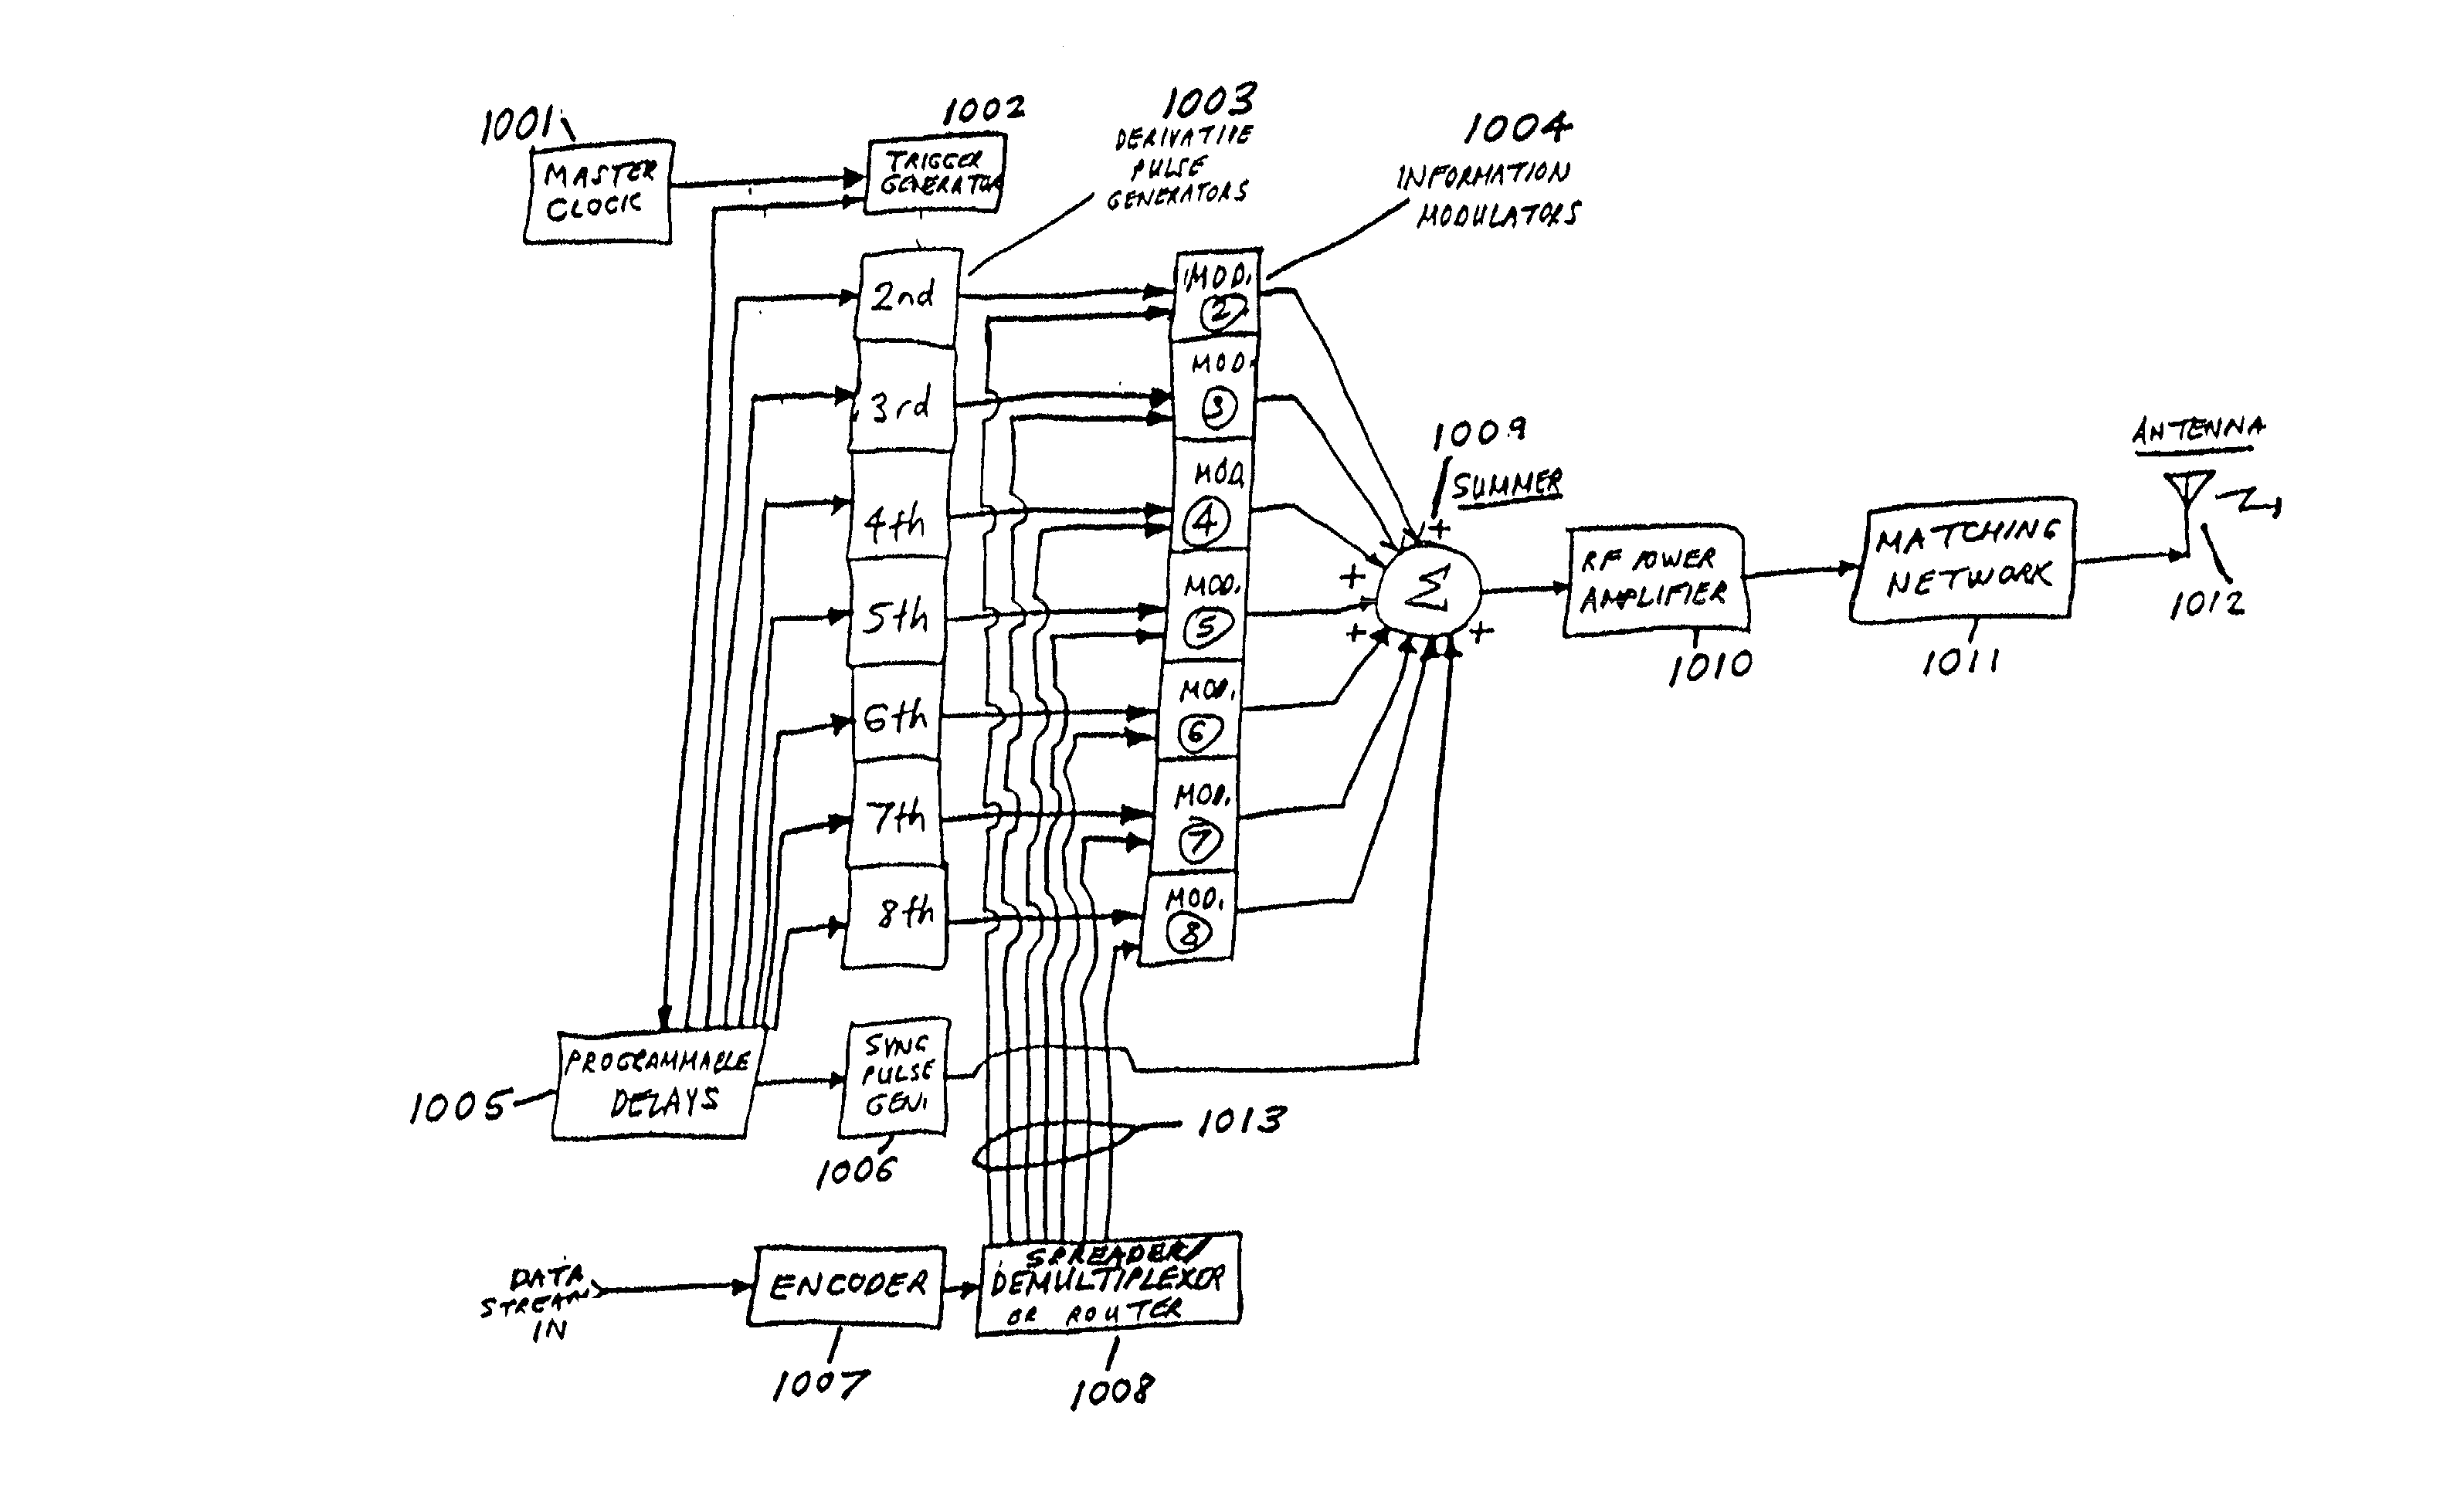 2 bit architectures harmful The basic of the x86 architecture in intel 8086 and intel 286 processors and the fs and gs registers were introduced into the intel 32 bit architecture.